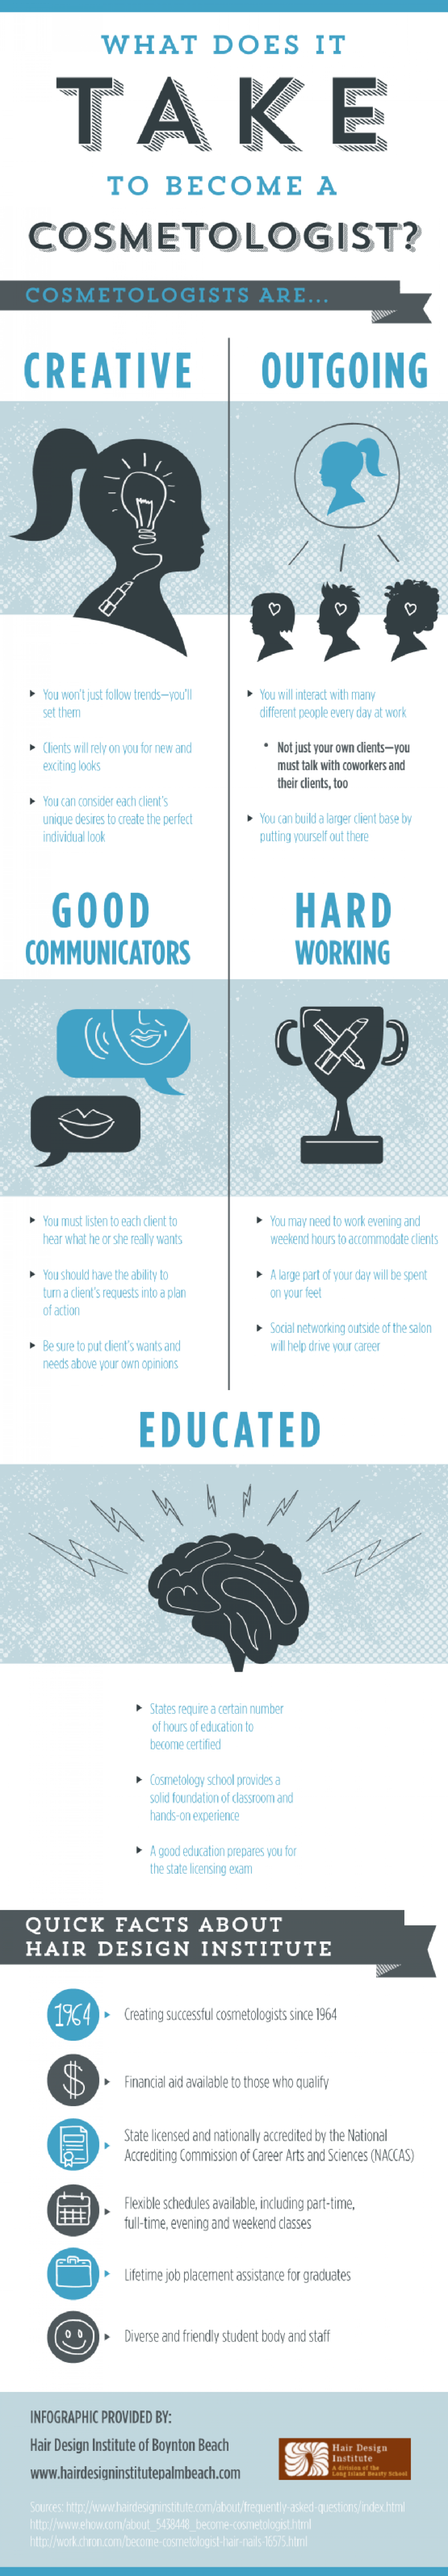 What Does It Take to Become a Cosmetologist?  Infographic